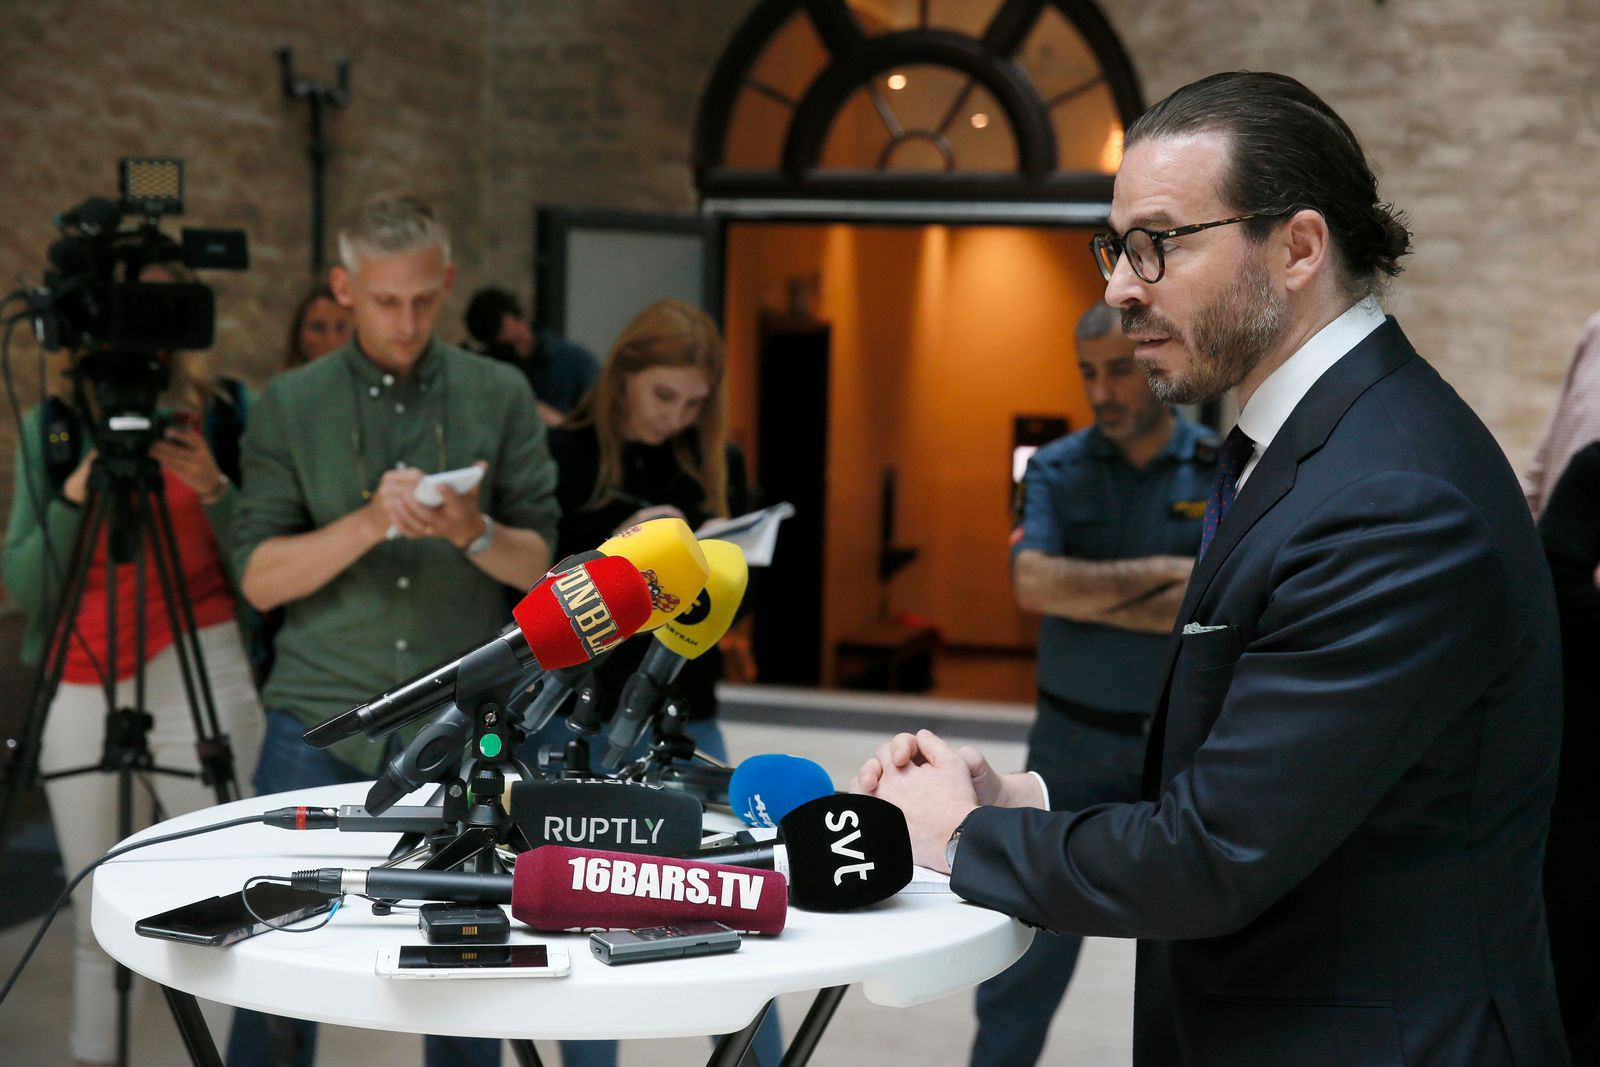 Slobodan Jovicic, lawyer for rapper A$AP Rocky, talks to the media after the arrest court proceedings in Stockholm, Friday, July 19, 2019. A Swedish prosecutor wants U.S. rapper A$AP Rocky held for another week in pre-trial detention to allow police to finish investigating a June 30 fight in Stockholm. (Fredrik Persson/TT News Agency via AP)